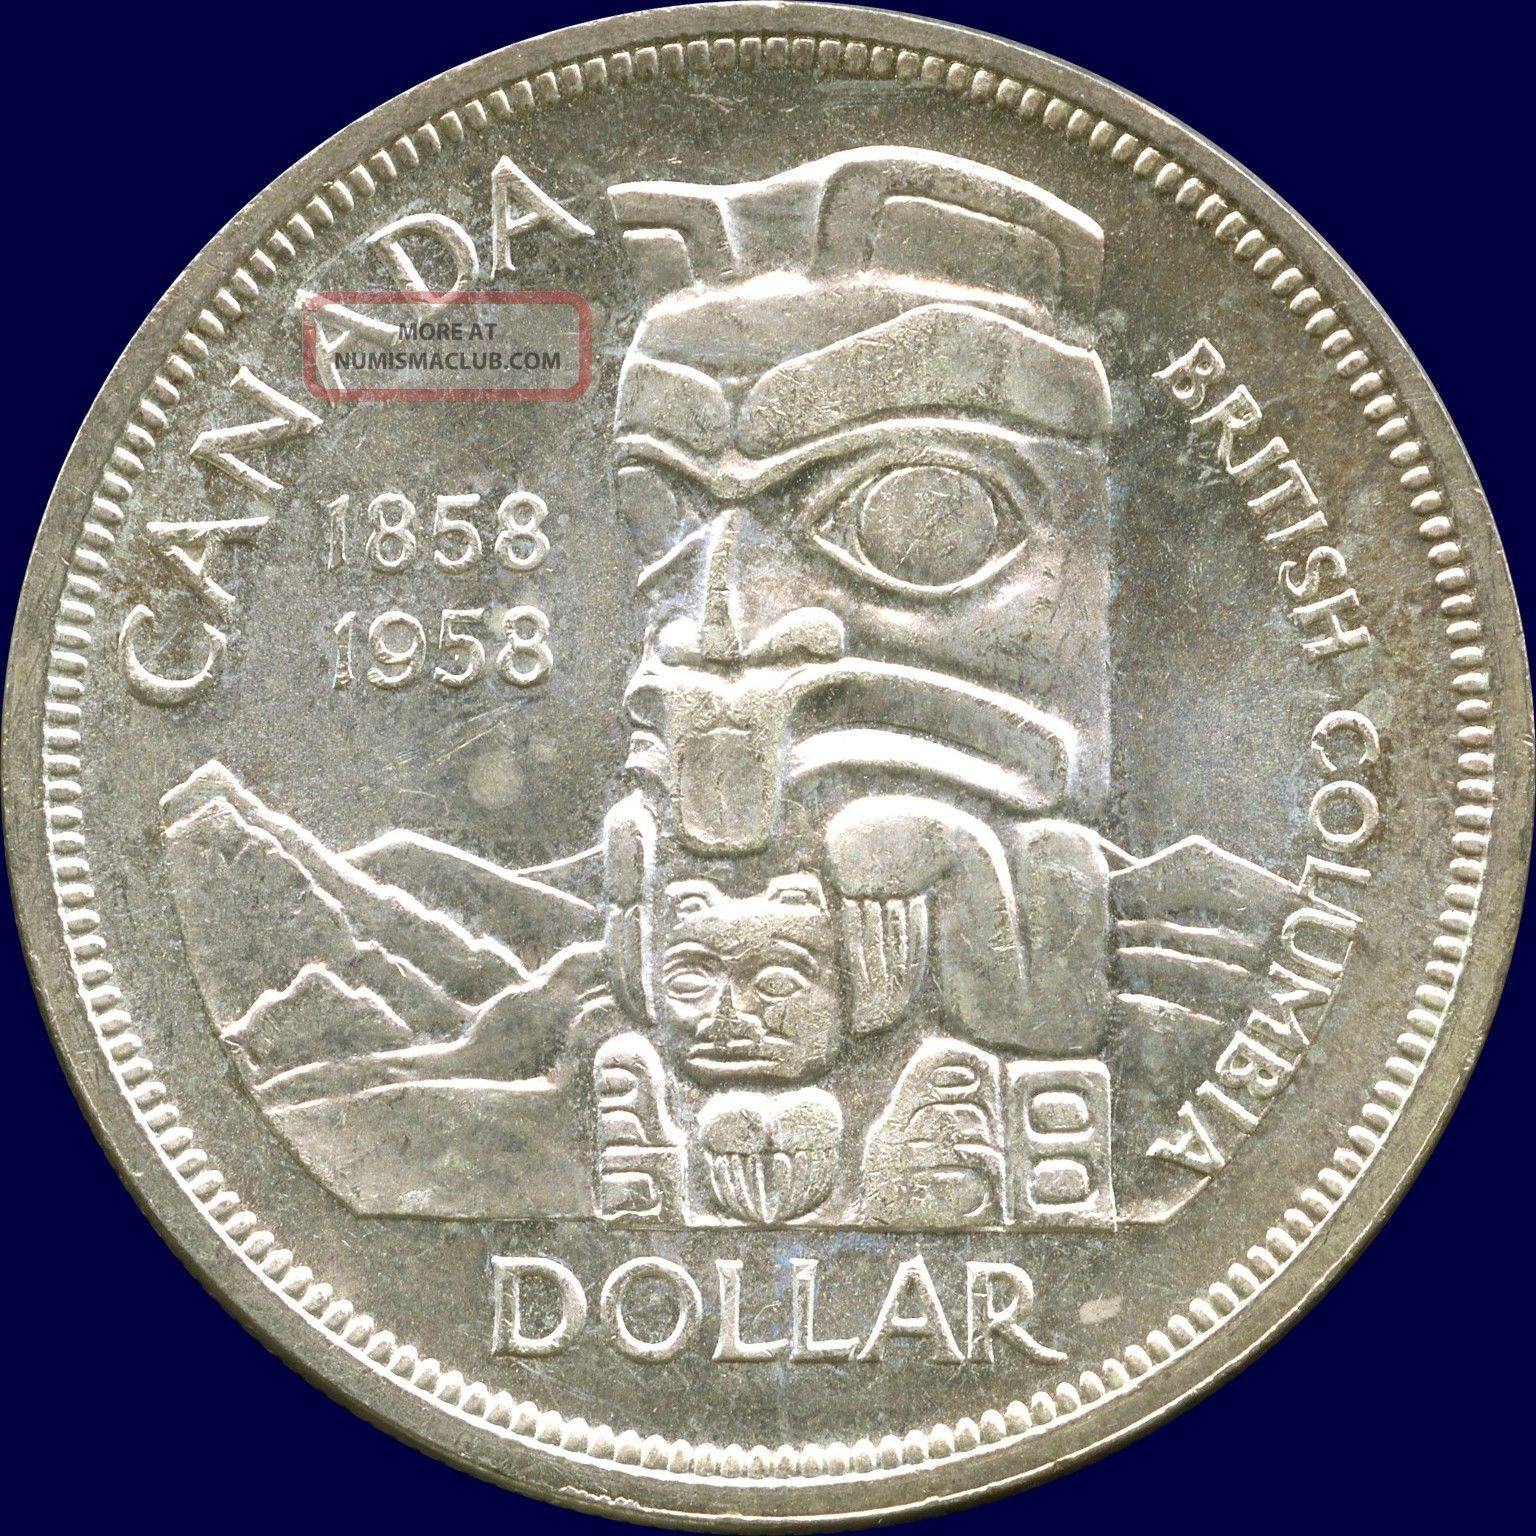 1958 Canada Silver Dollar British Columbia S 100th 23